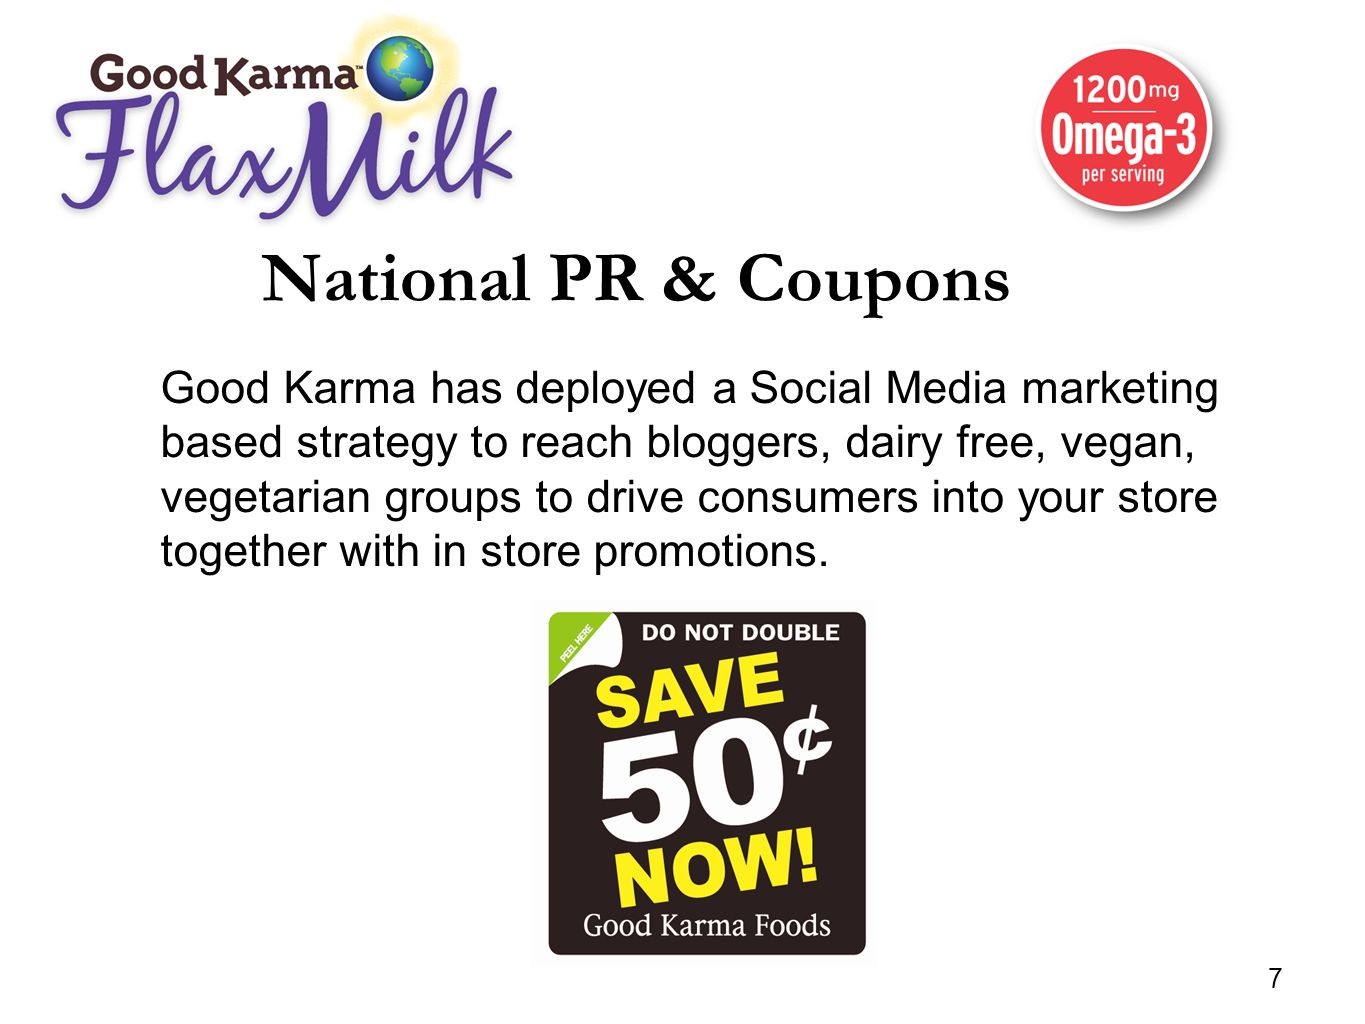 Thank you for your time and interest in Good Karma Foods.